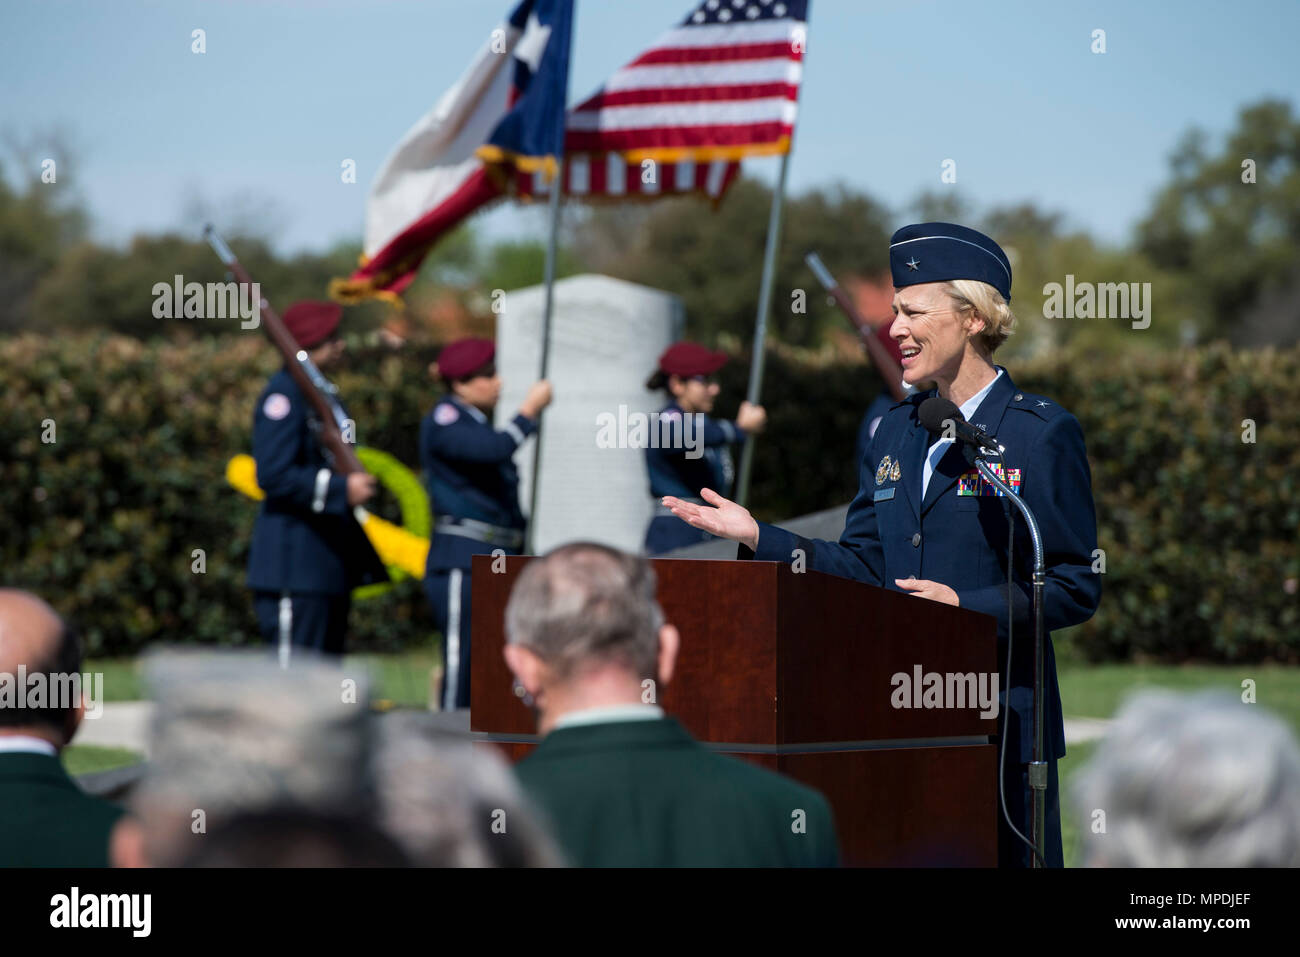 U.S. Air Force Brig. Gen. Heather Pringle, 502nd Air Base Wing and Joint Base San Antonio commander, speaks during a ceremony celebrating the anniversary of the first flight of Army Signal Corps aircraft No. 1 March 2, 2017, at JBSA-Fort Sam Houston, Texas. First Lt. Benjamin Foulois is credited with completing the first military flight on March 2, 1910. (U.S. Air Force photo by Senior Airman Stormy Archer) - Stock Image